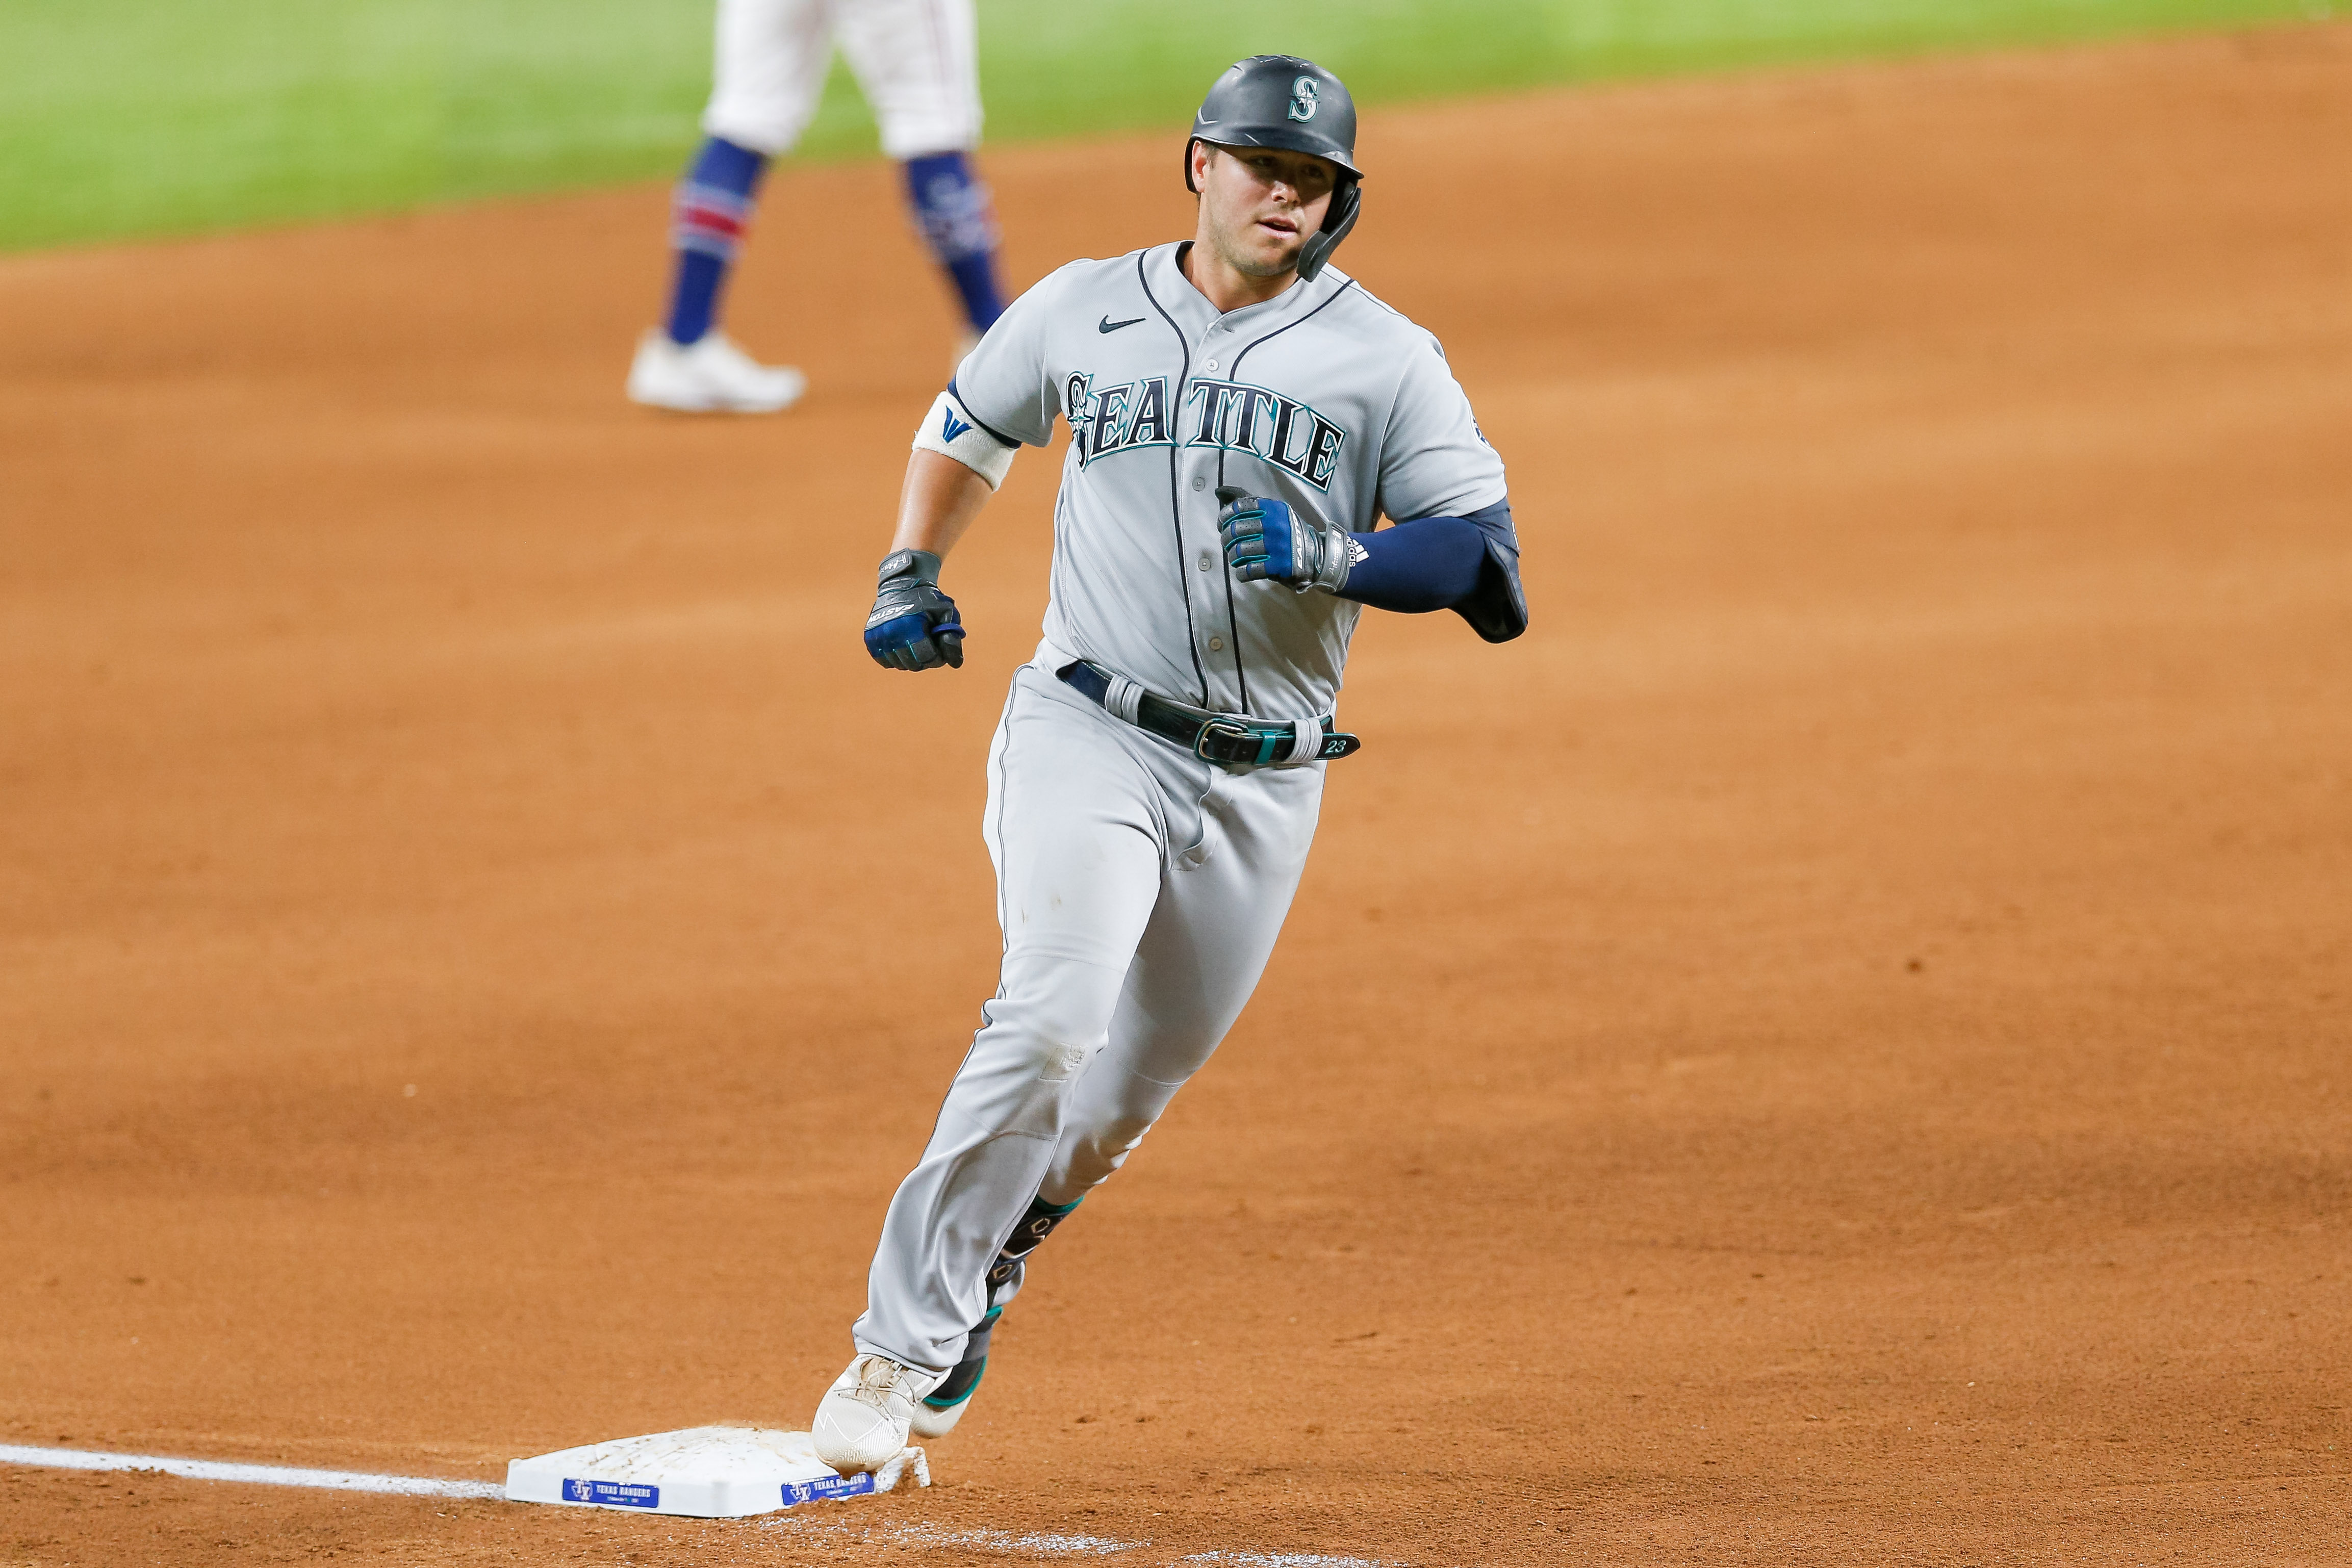 Seattle Mariners vs New York Yankees Prediction, 8/8/2021 MLB Pick, Tips and Odds